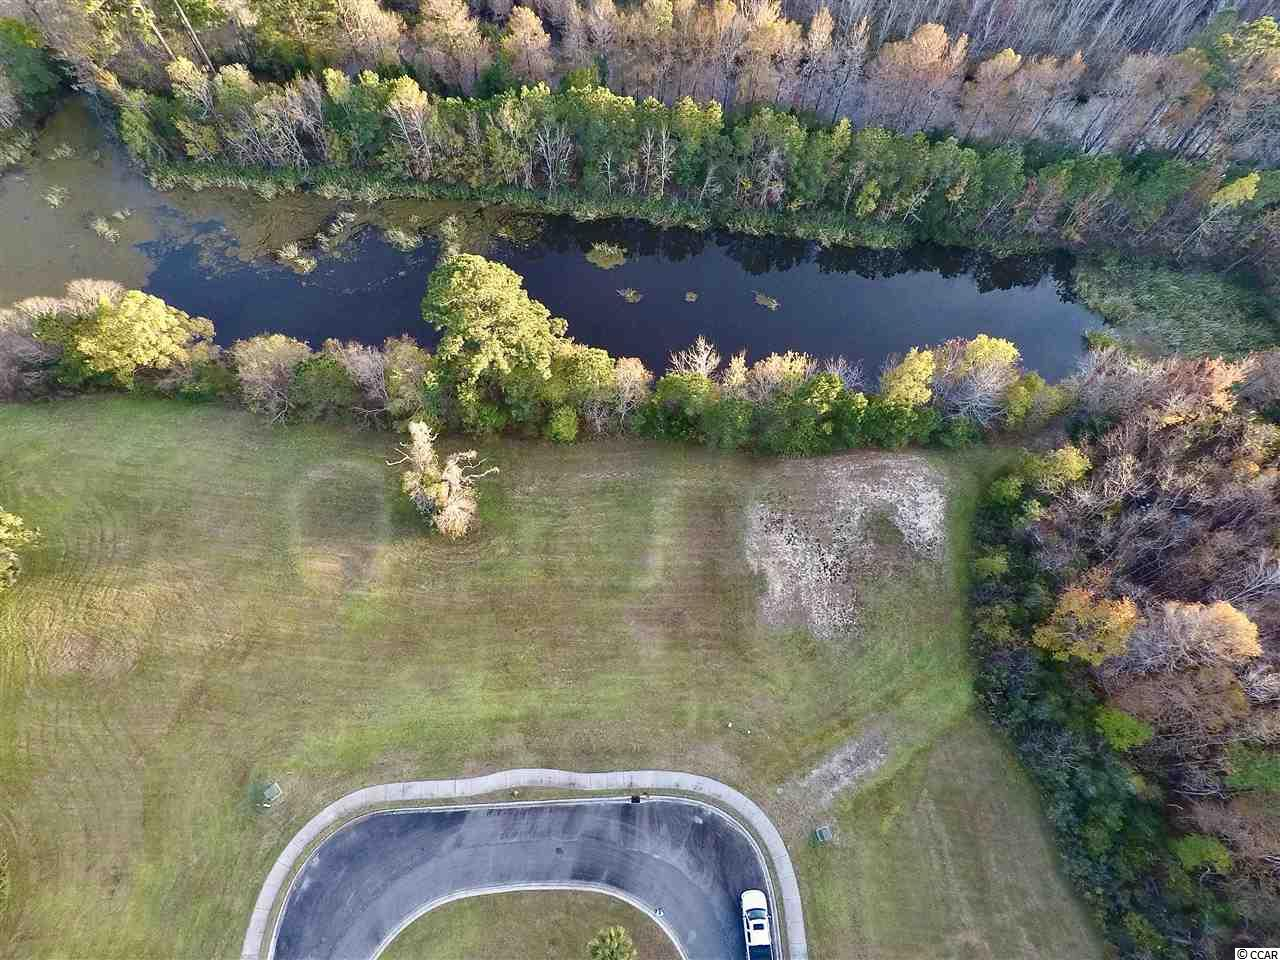 Over 1/3 of an acre lot - ready for you to build your dream home in the gated community of South Island Plantation.  Enjoy the many available amenities such as the 5000+ square foot clubhouse with kitchen/bar, walking trails, full fitness center, swimming center which includes pool and hot tub.  Stop by to see the potential of this lot, envision where you will build your home and consider the enjoyment offered by living in this community!